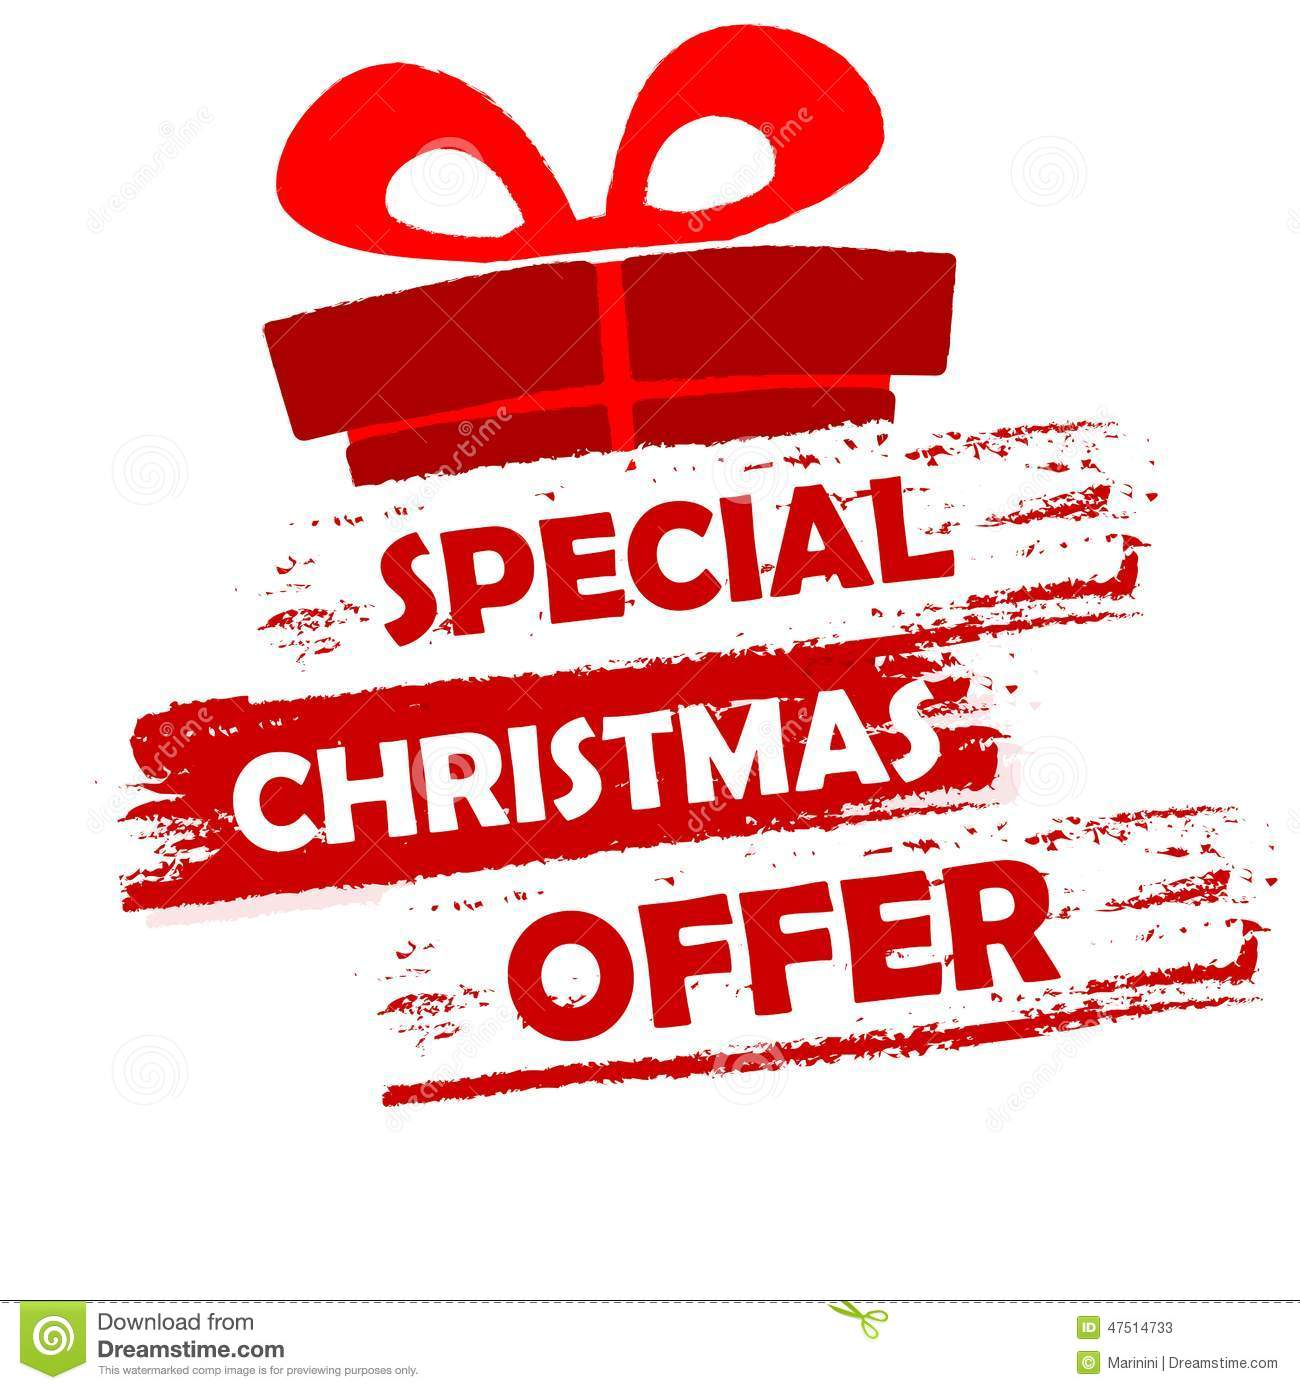 Offer: Special Christmas Offer Stock Illustration. Image Of Gift